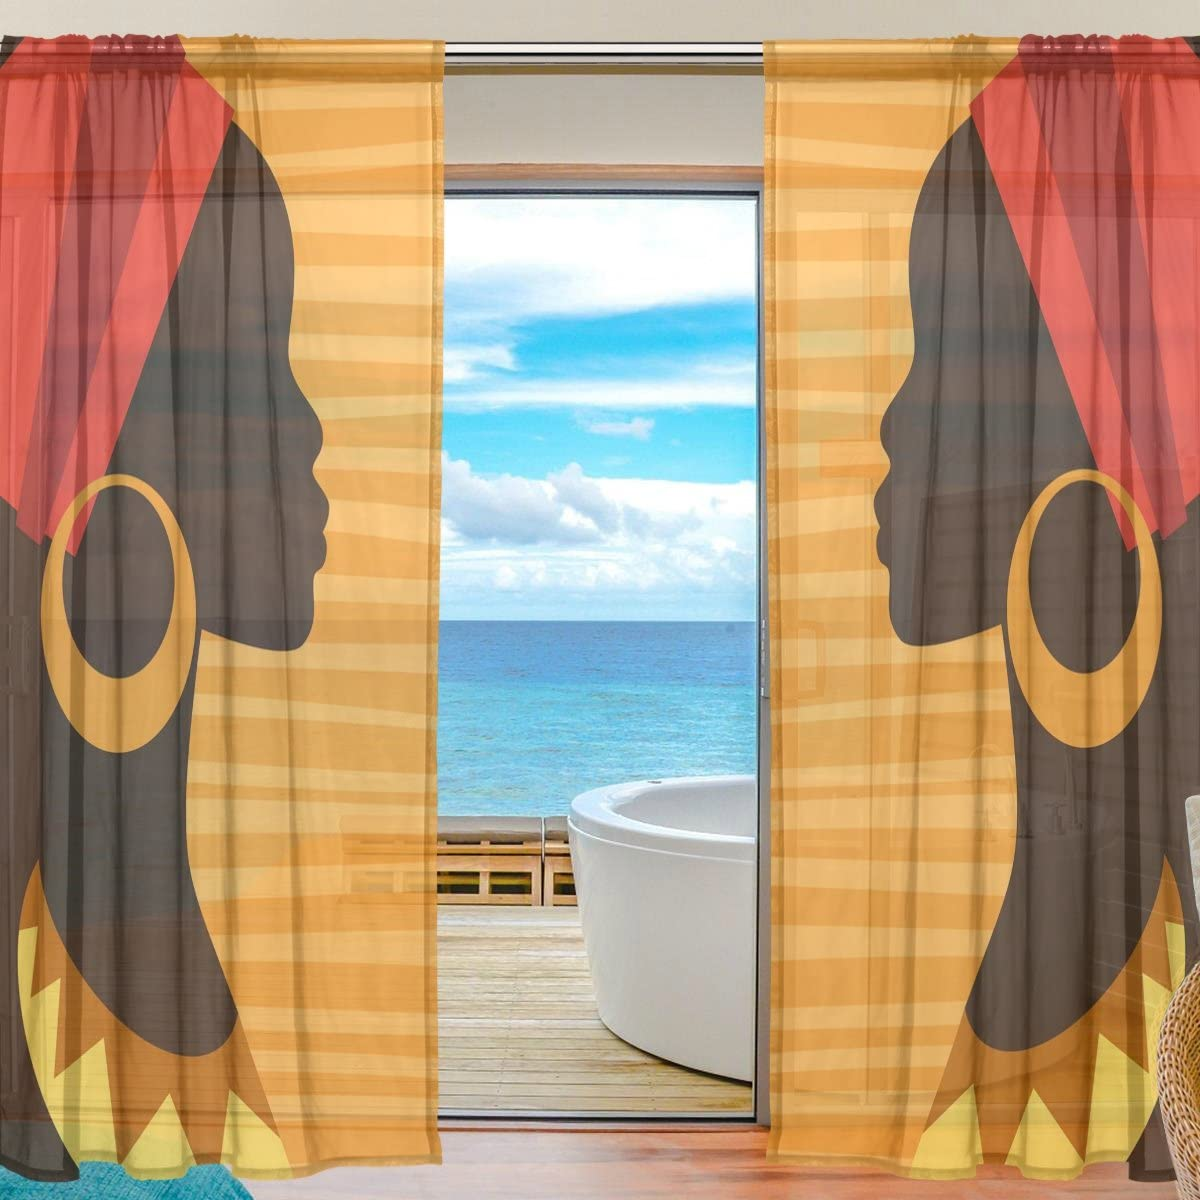 ALAZA Voile Sheer Window Curtain Silhouette African Girl with Earrings Door Way Tulle Curtain Drapes Panels for Living Room Bedroom Kitchen 55×78 inch, Set of 2